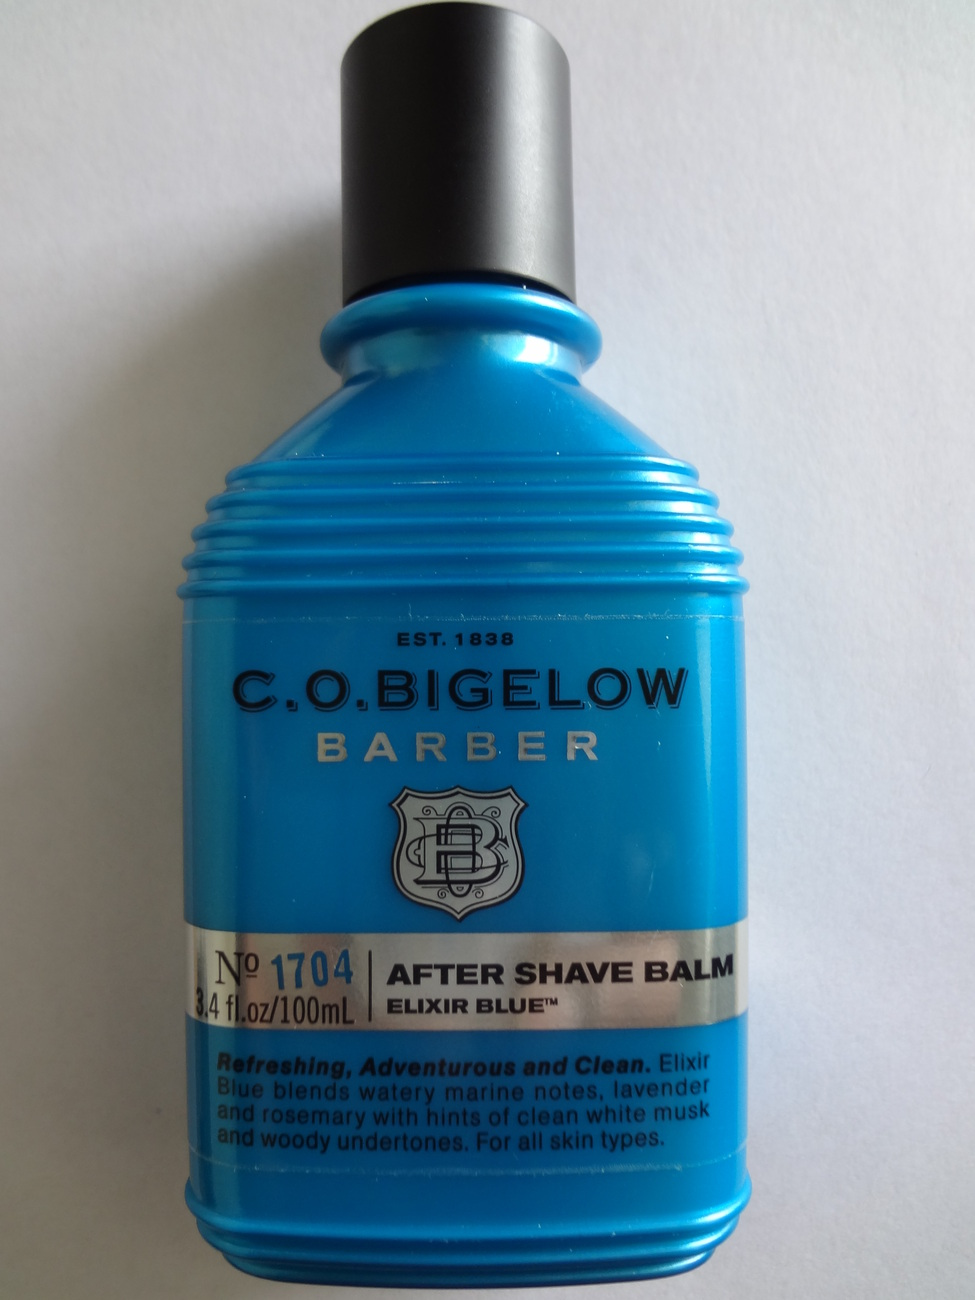 Bath & Body Works C.O. Bigelow Barber After Shave Balm Elixir Blue # 1704  3.4 oz / 100ml at Sears.com